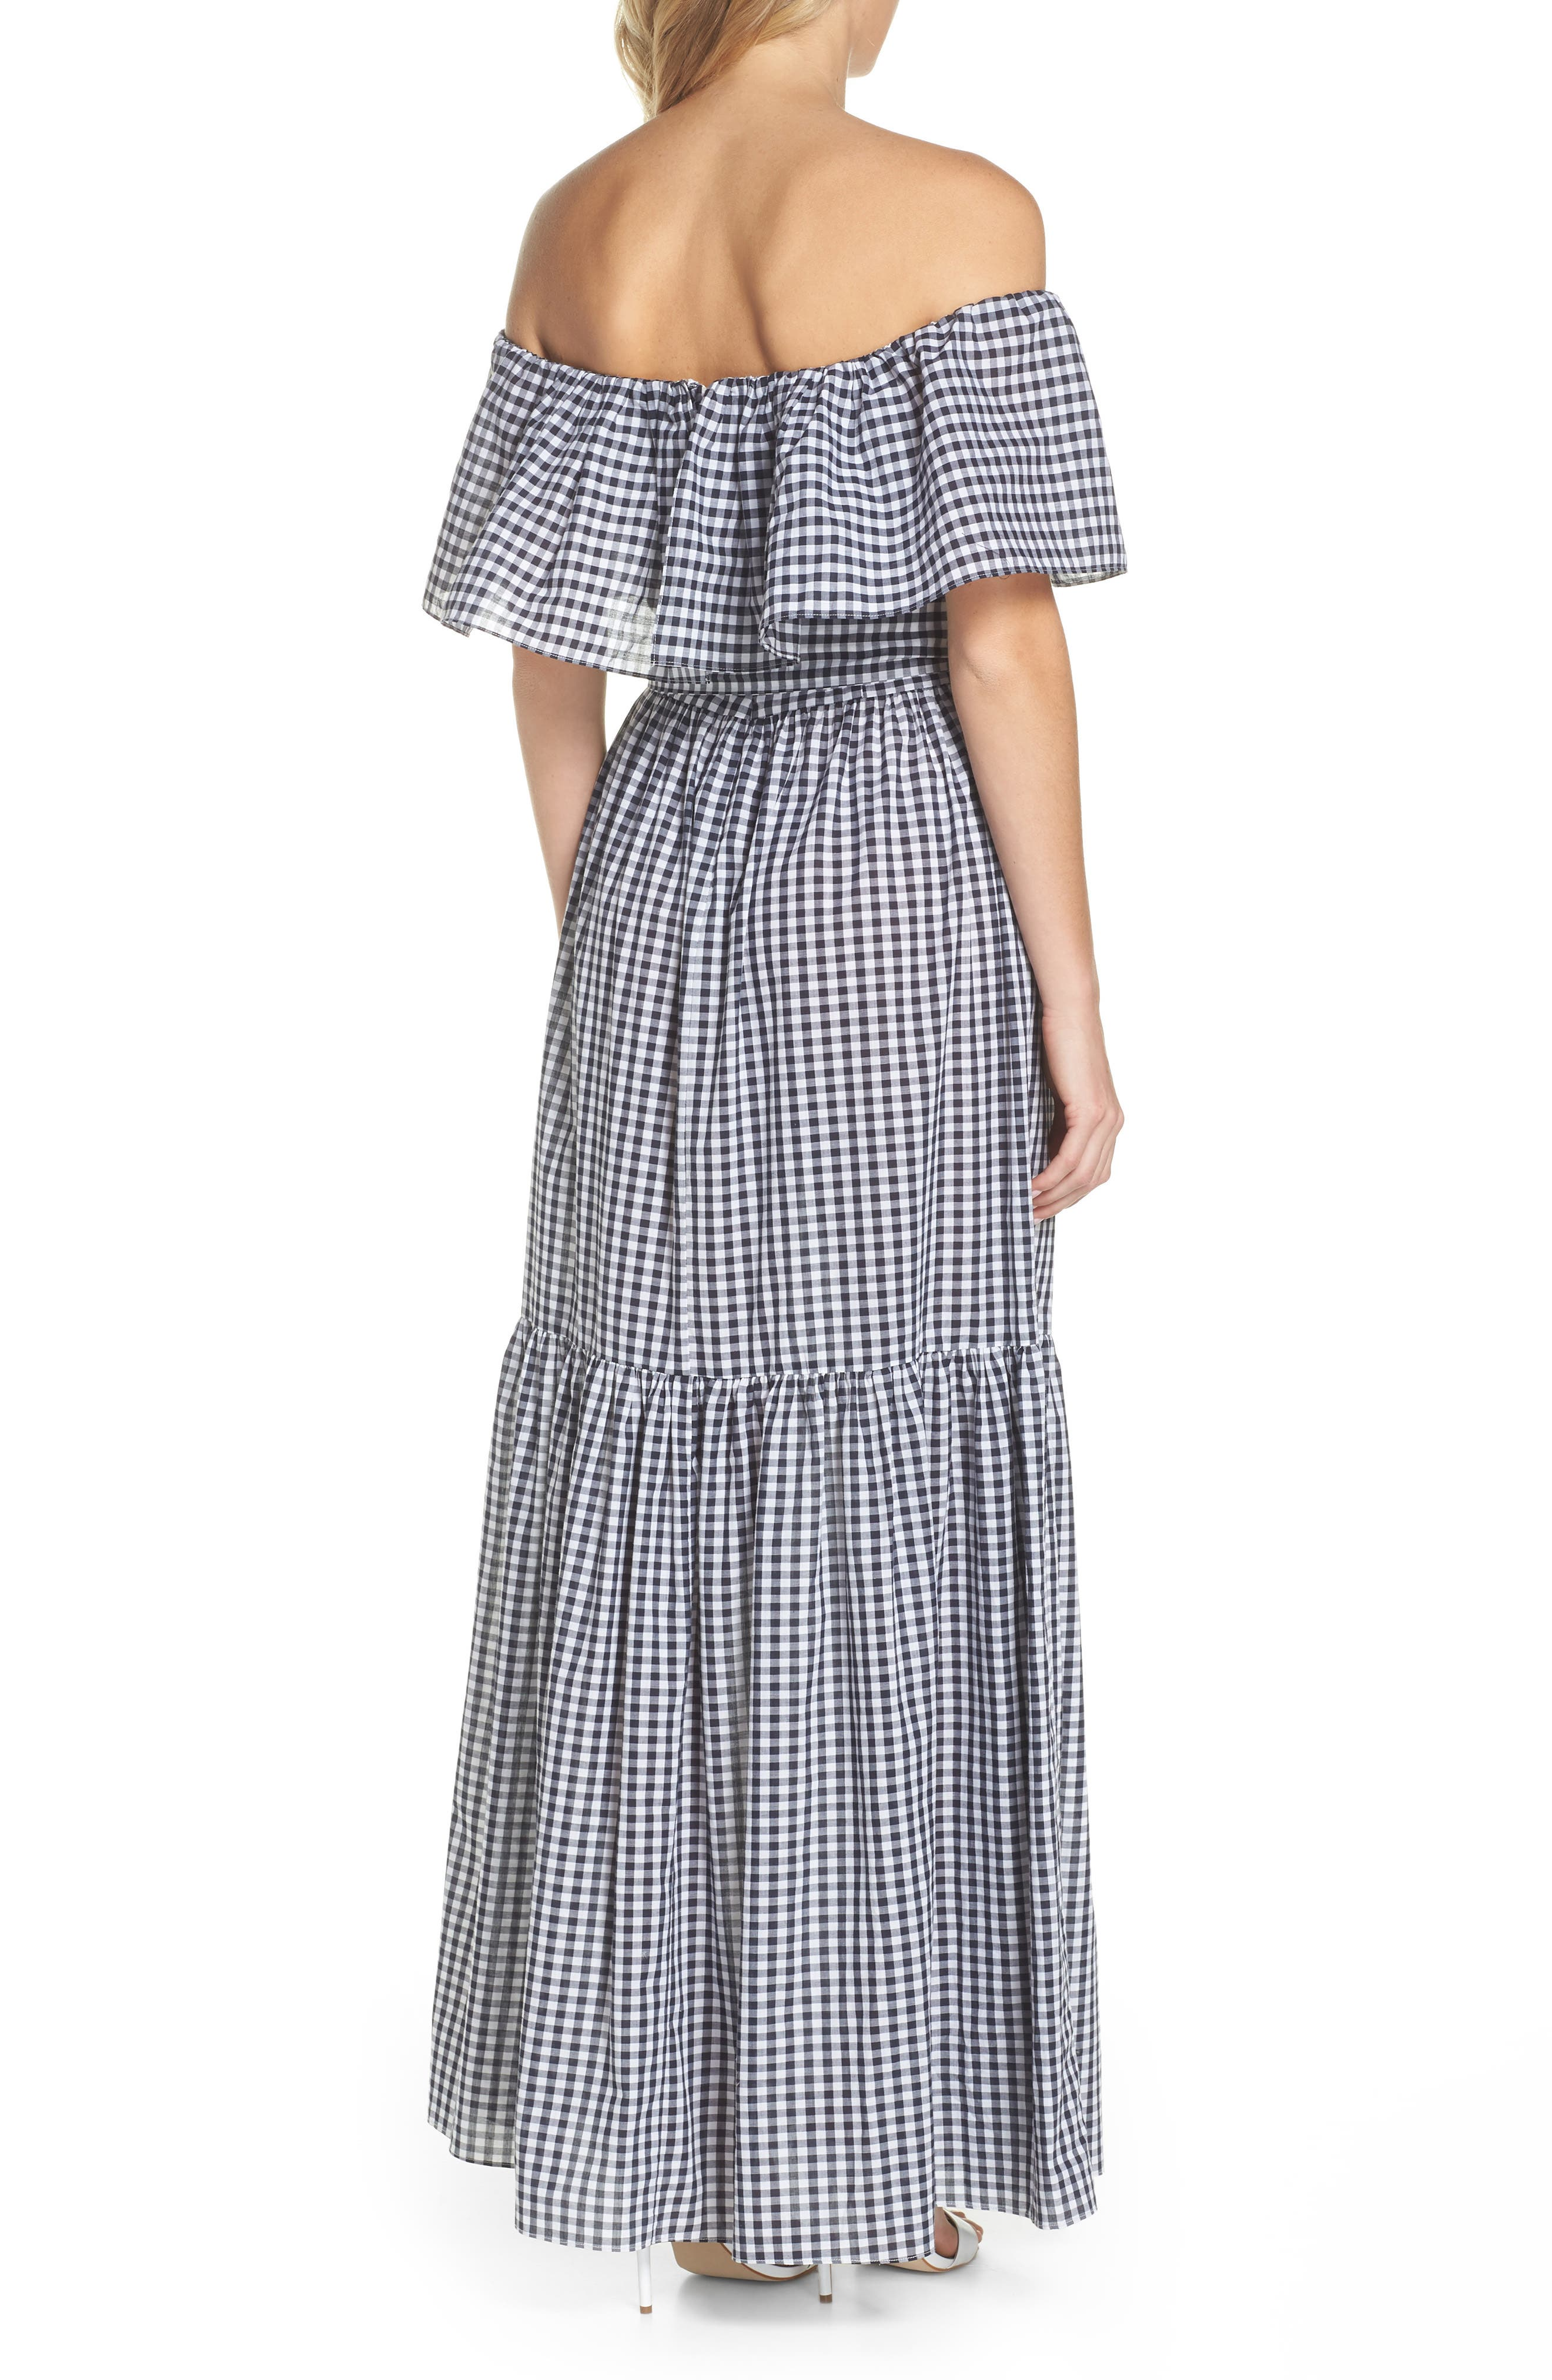 Off the Shoulder Ruffle Gingham Maxi Dress,                             Alternate thumbnail 2, color,                             410